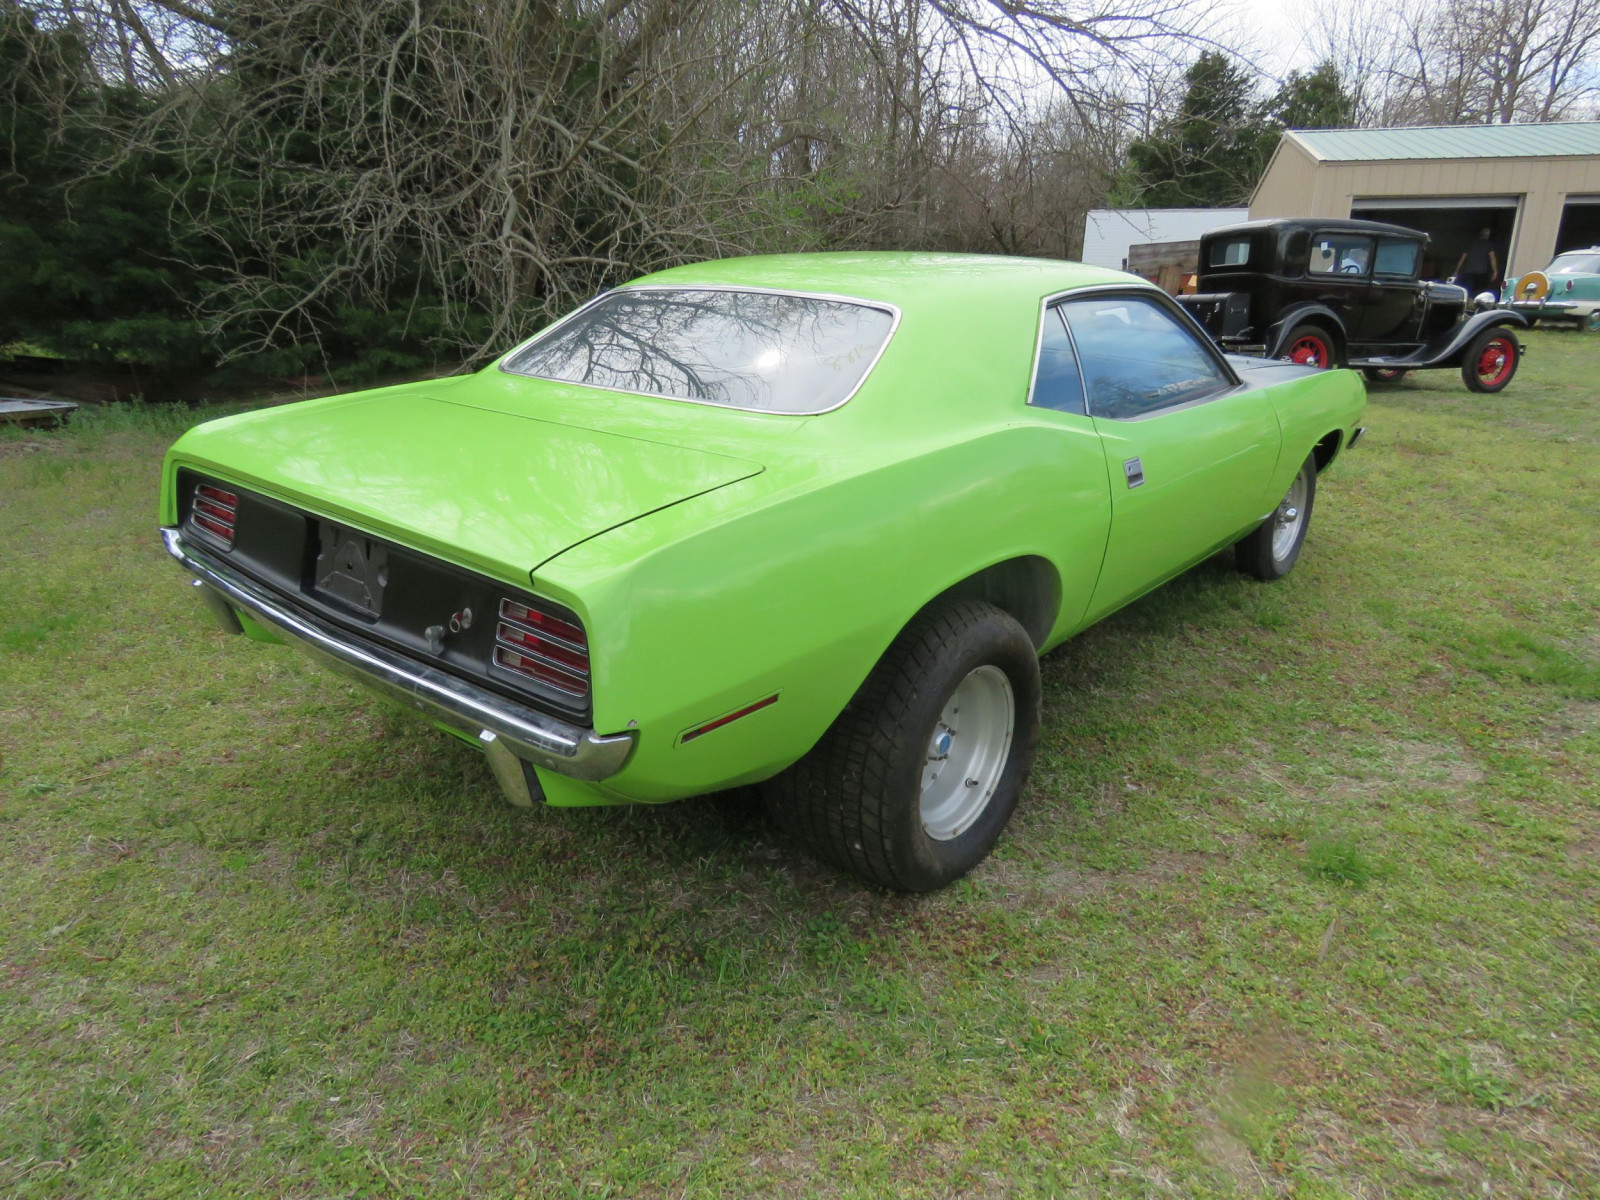 1970 PLYMOUTH CUDA DRAG CAR - Image 10